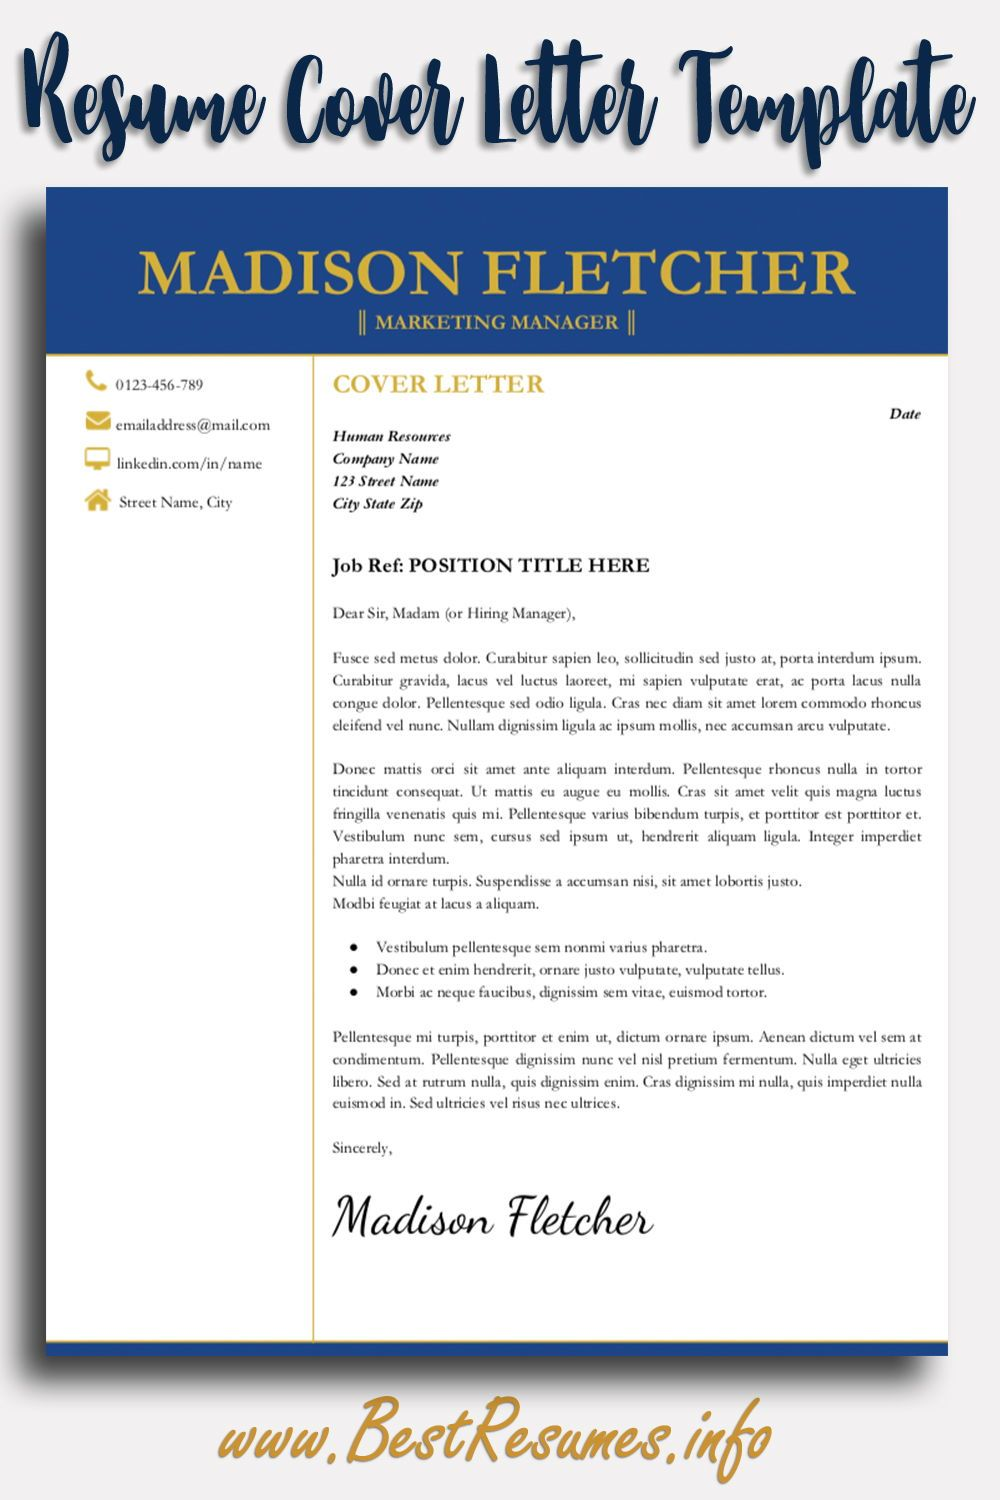 Elegant Resume Template Madison Fletcher - Resume cover letter template, Resume template, Resume template professional, Resume, Resume templates, Cover letter for resume - Elegant Resume Template Madison Fletcher  Get this resume killer modern resume template for Google Docs and land the job! Check more here